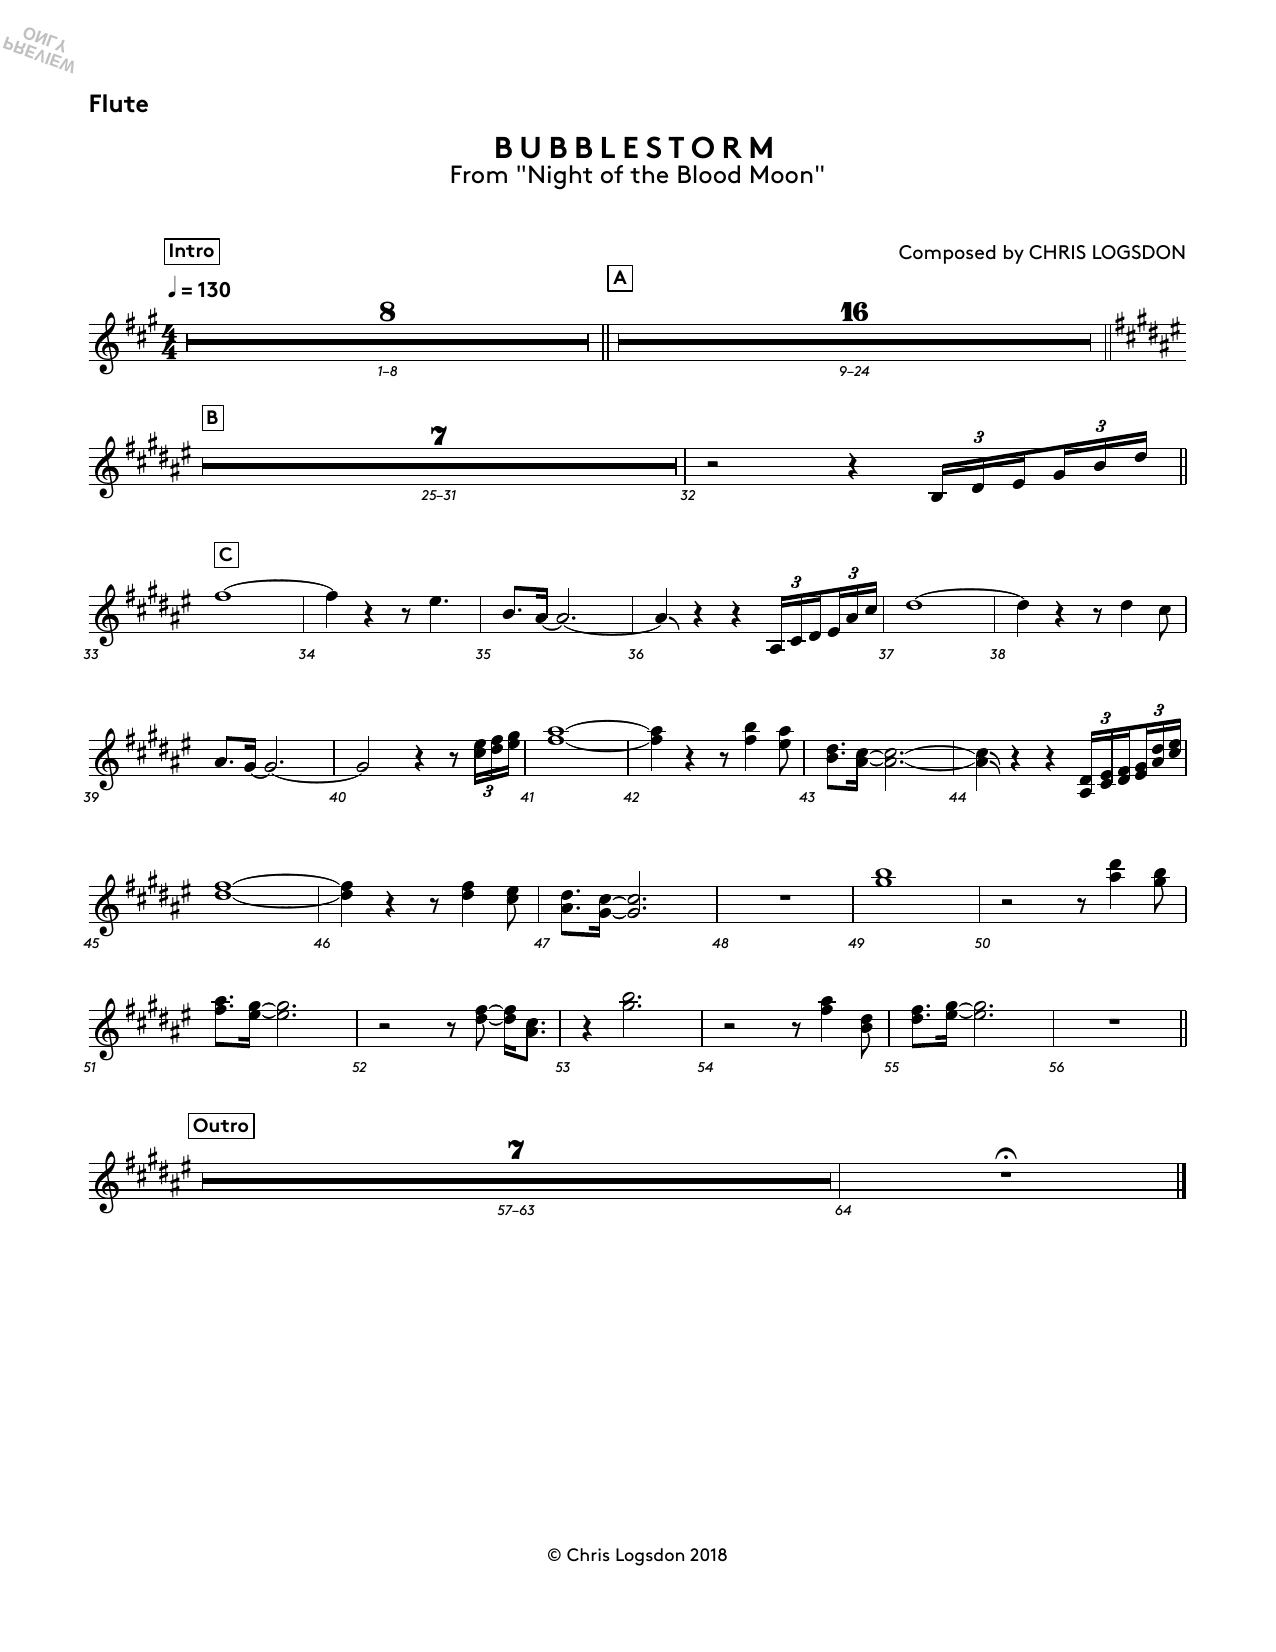 Chris Logsdon Bubblestorm (from Night of the Blood Moon) - Flute sheet music notes and chords. Download Printable PDF.